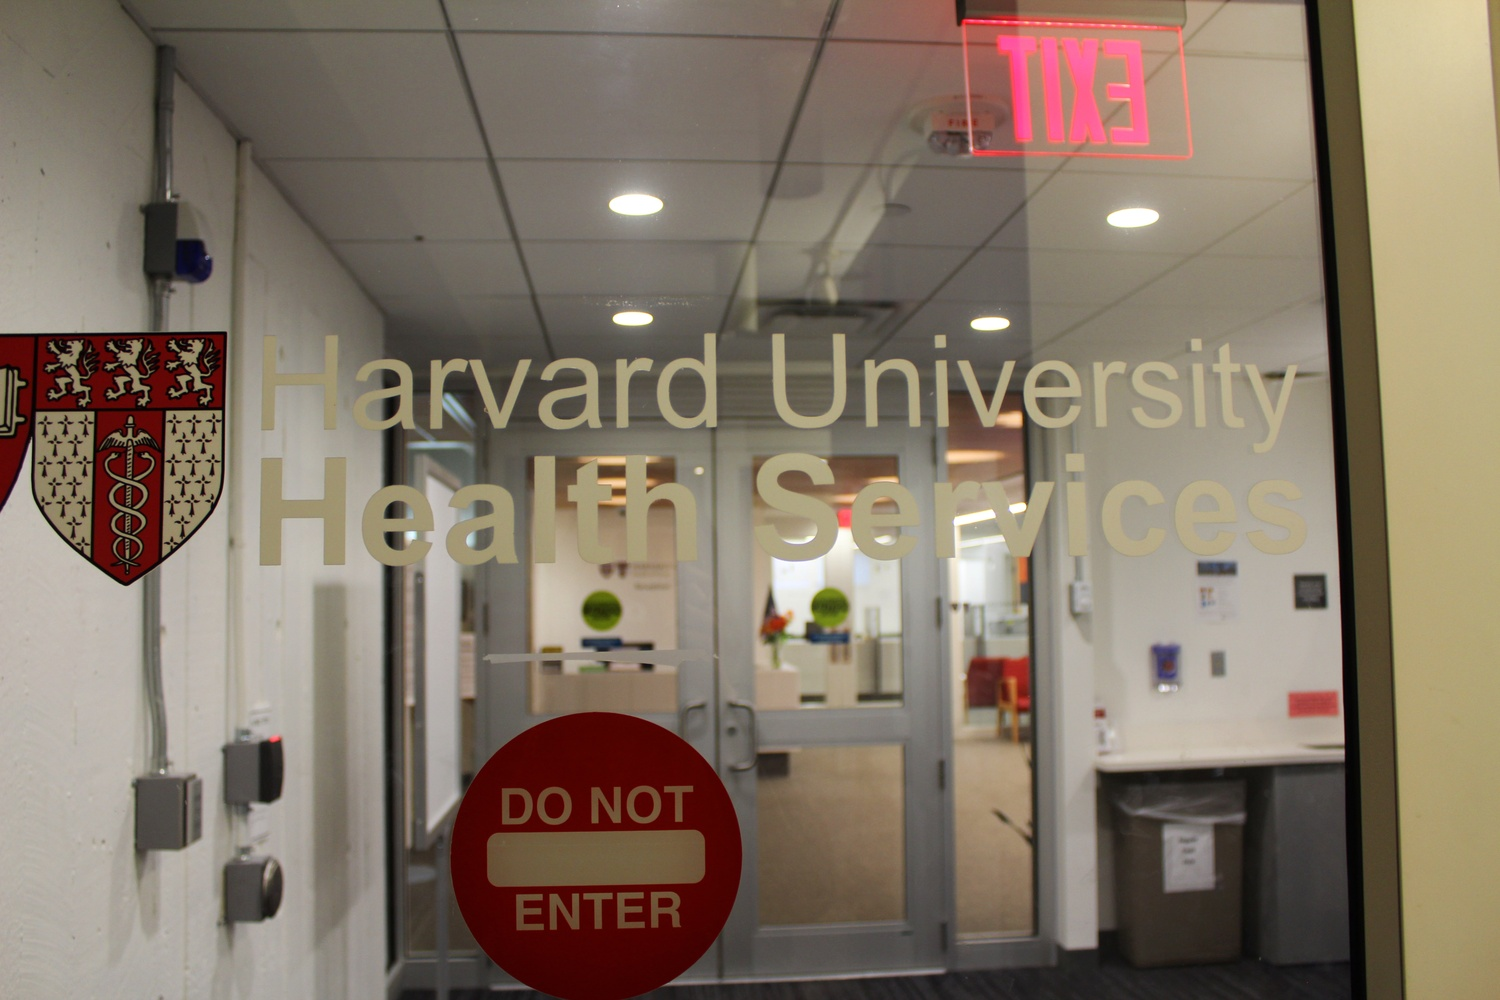 Harvard University Health Services.